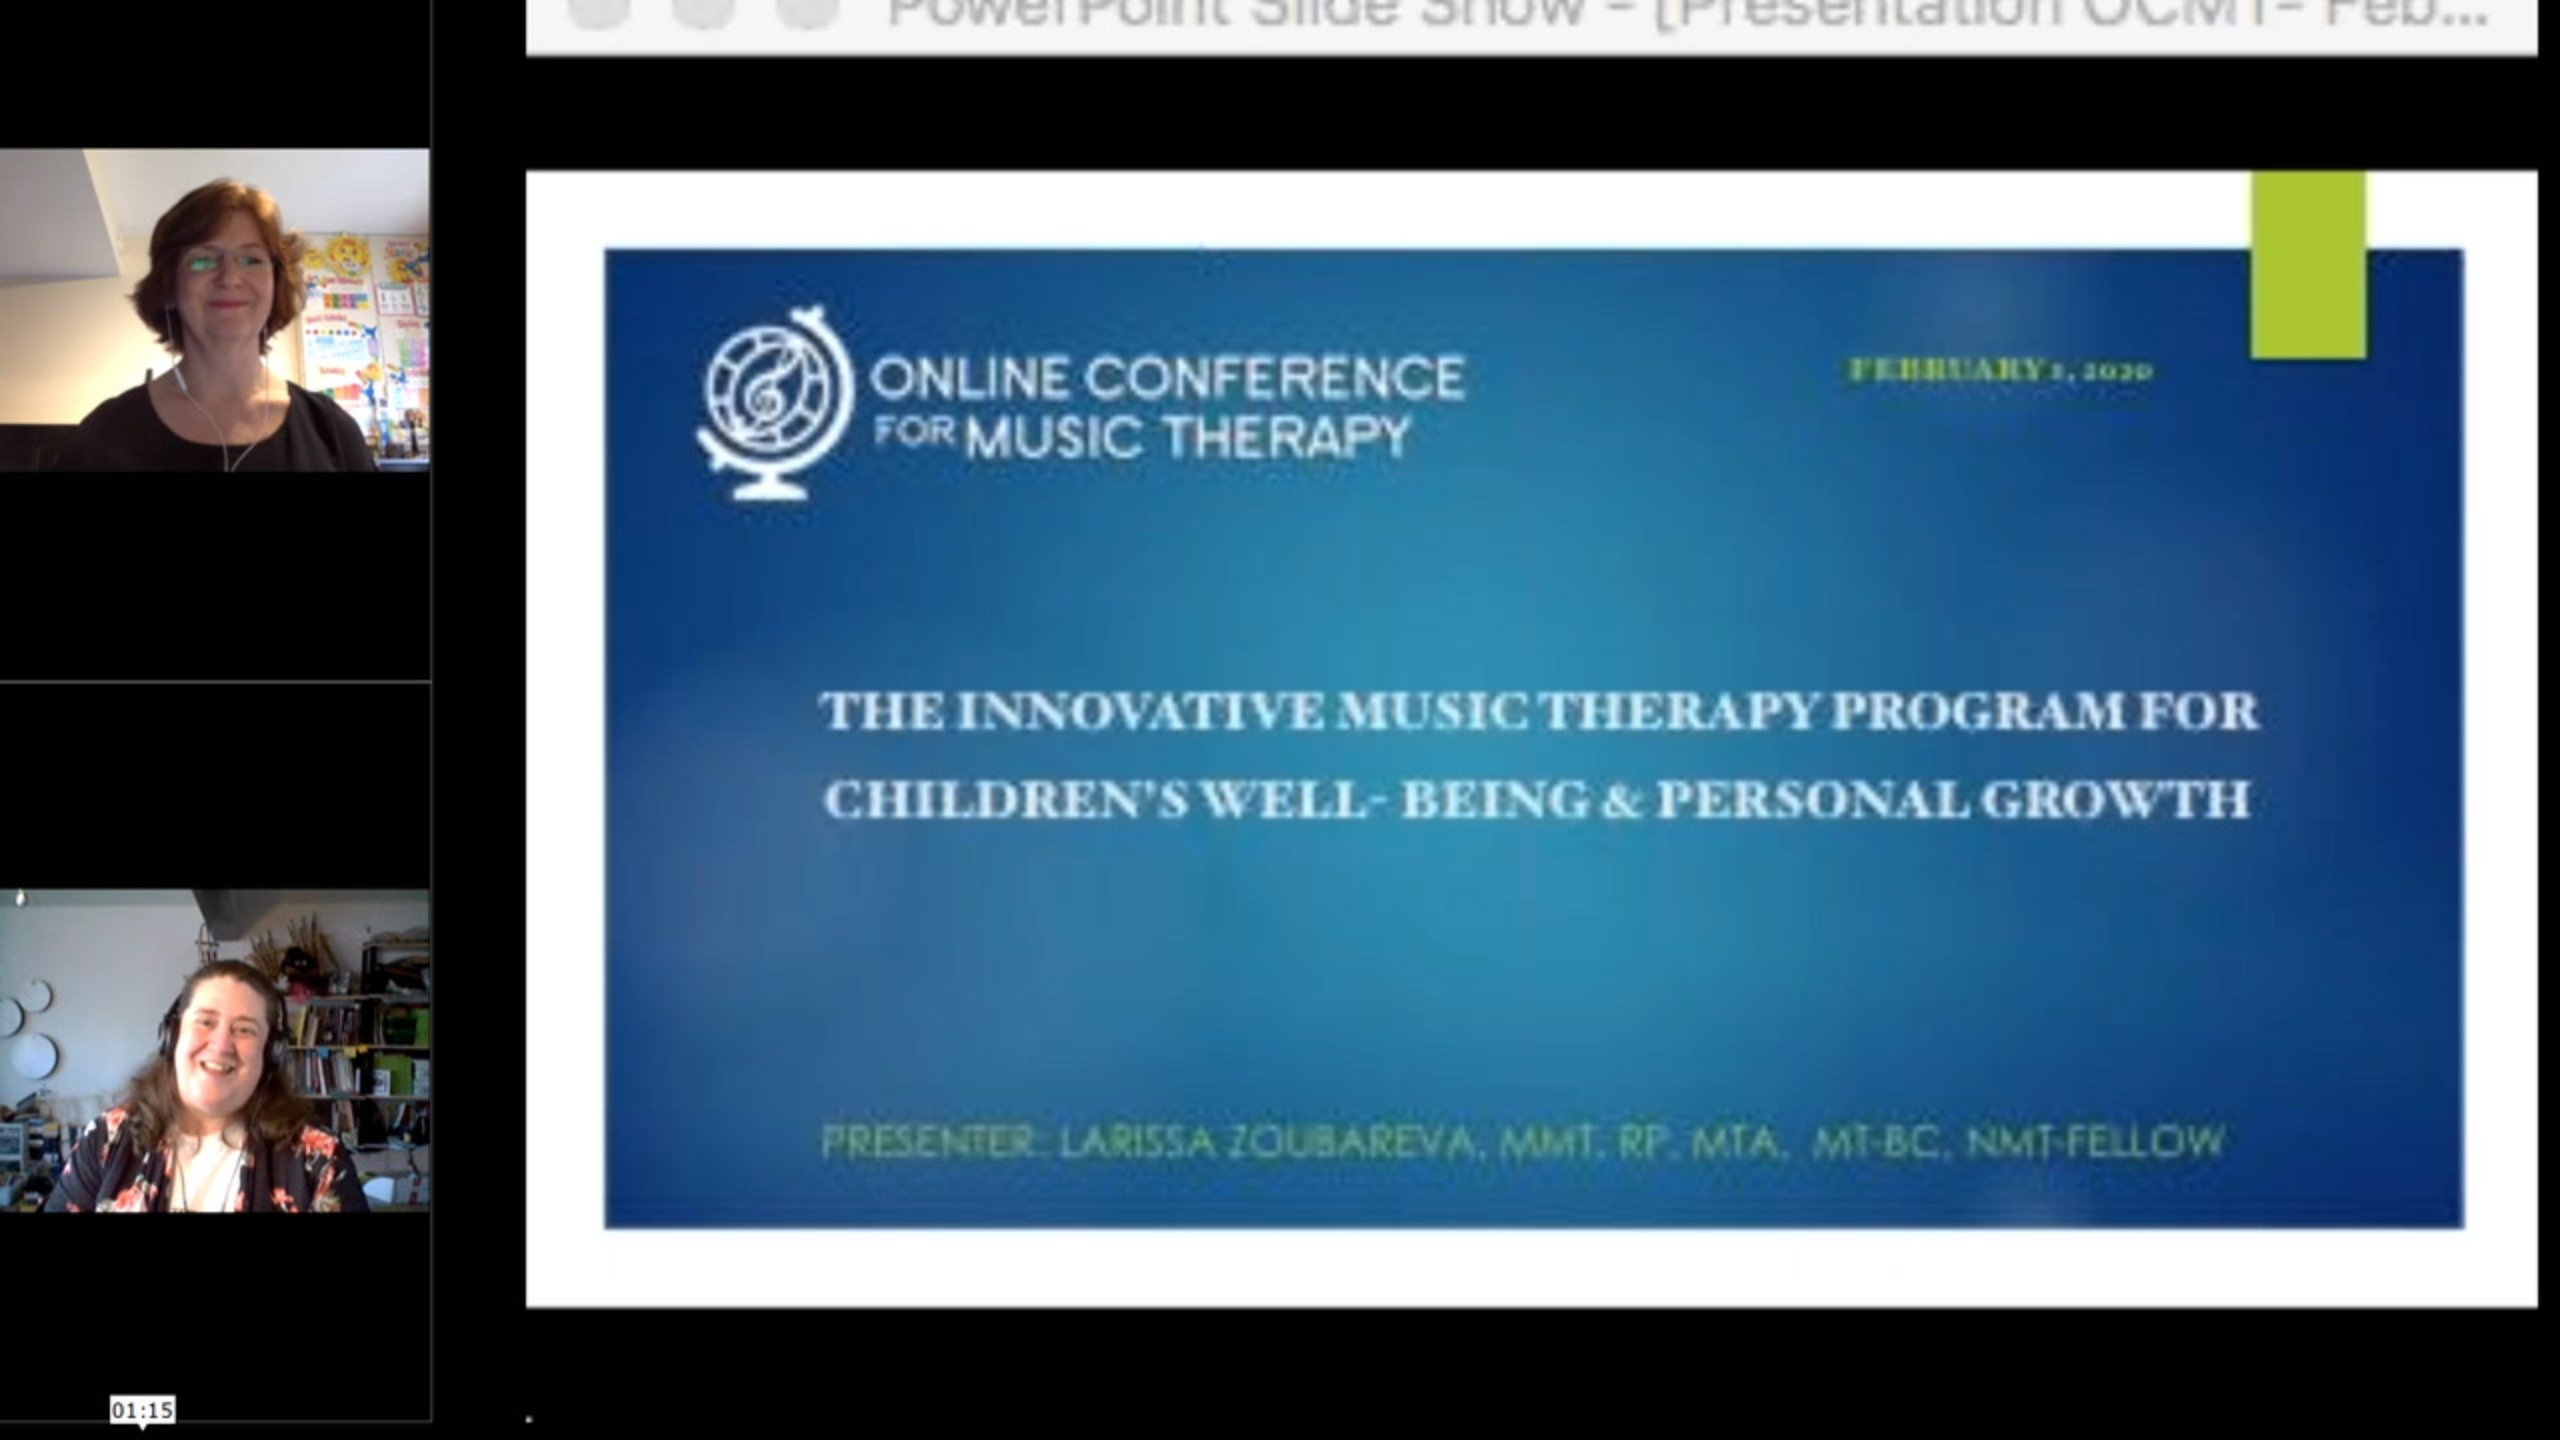 The Innovative Music Therapy Program for Children's Well-Being and Personal Growth